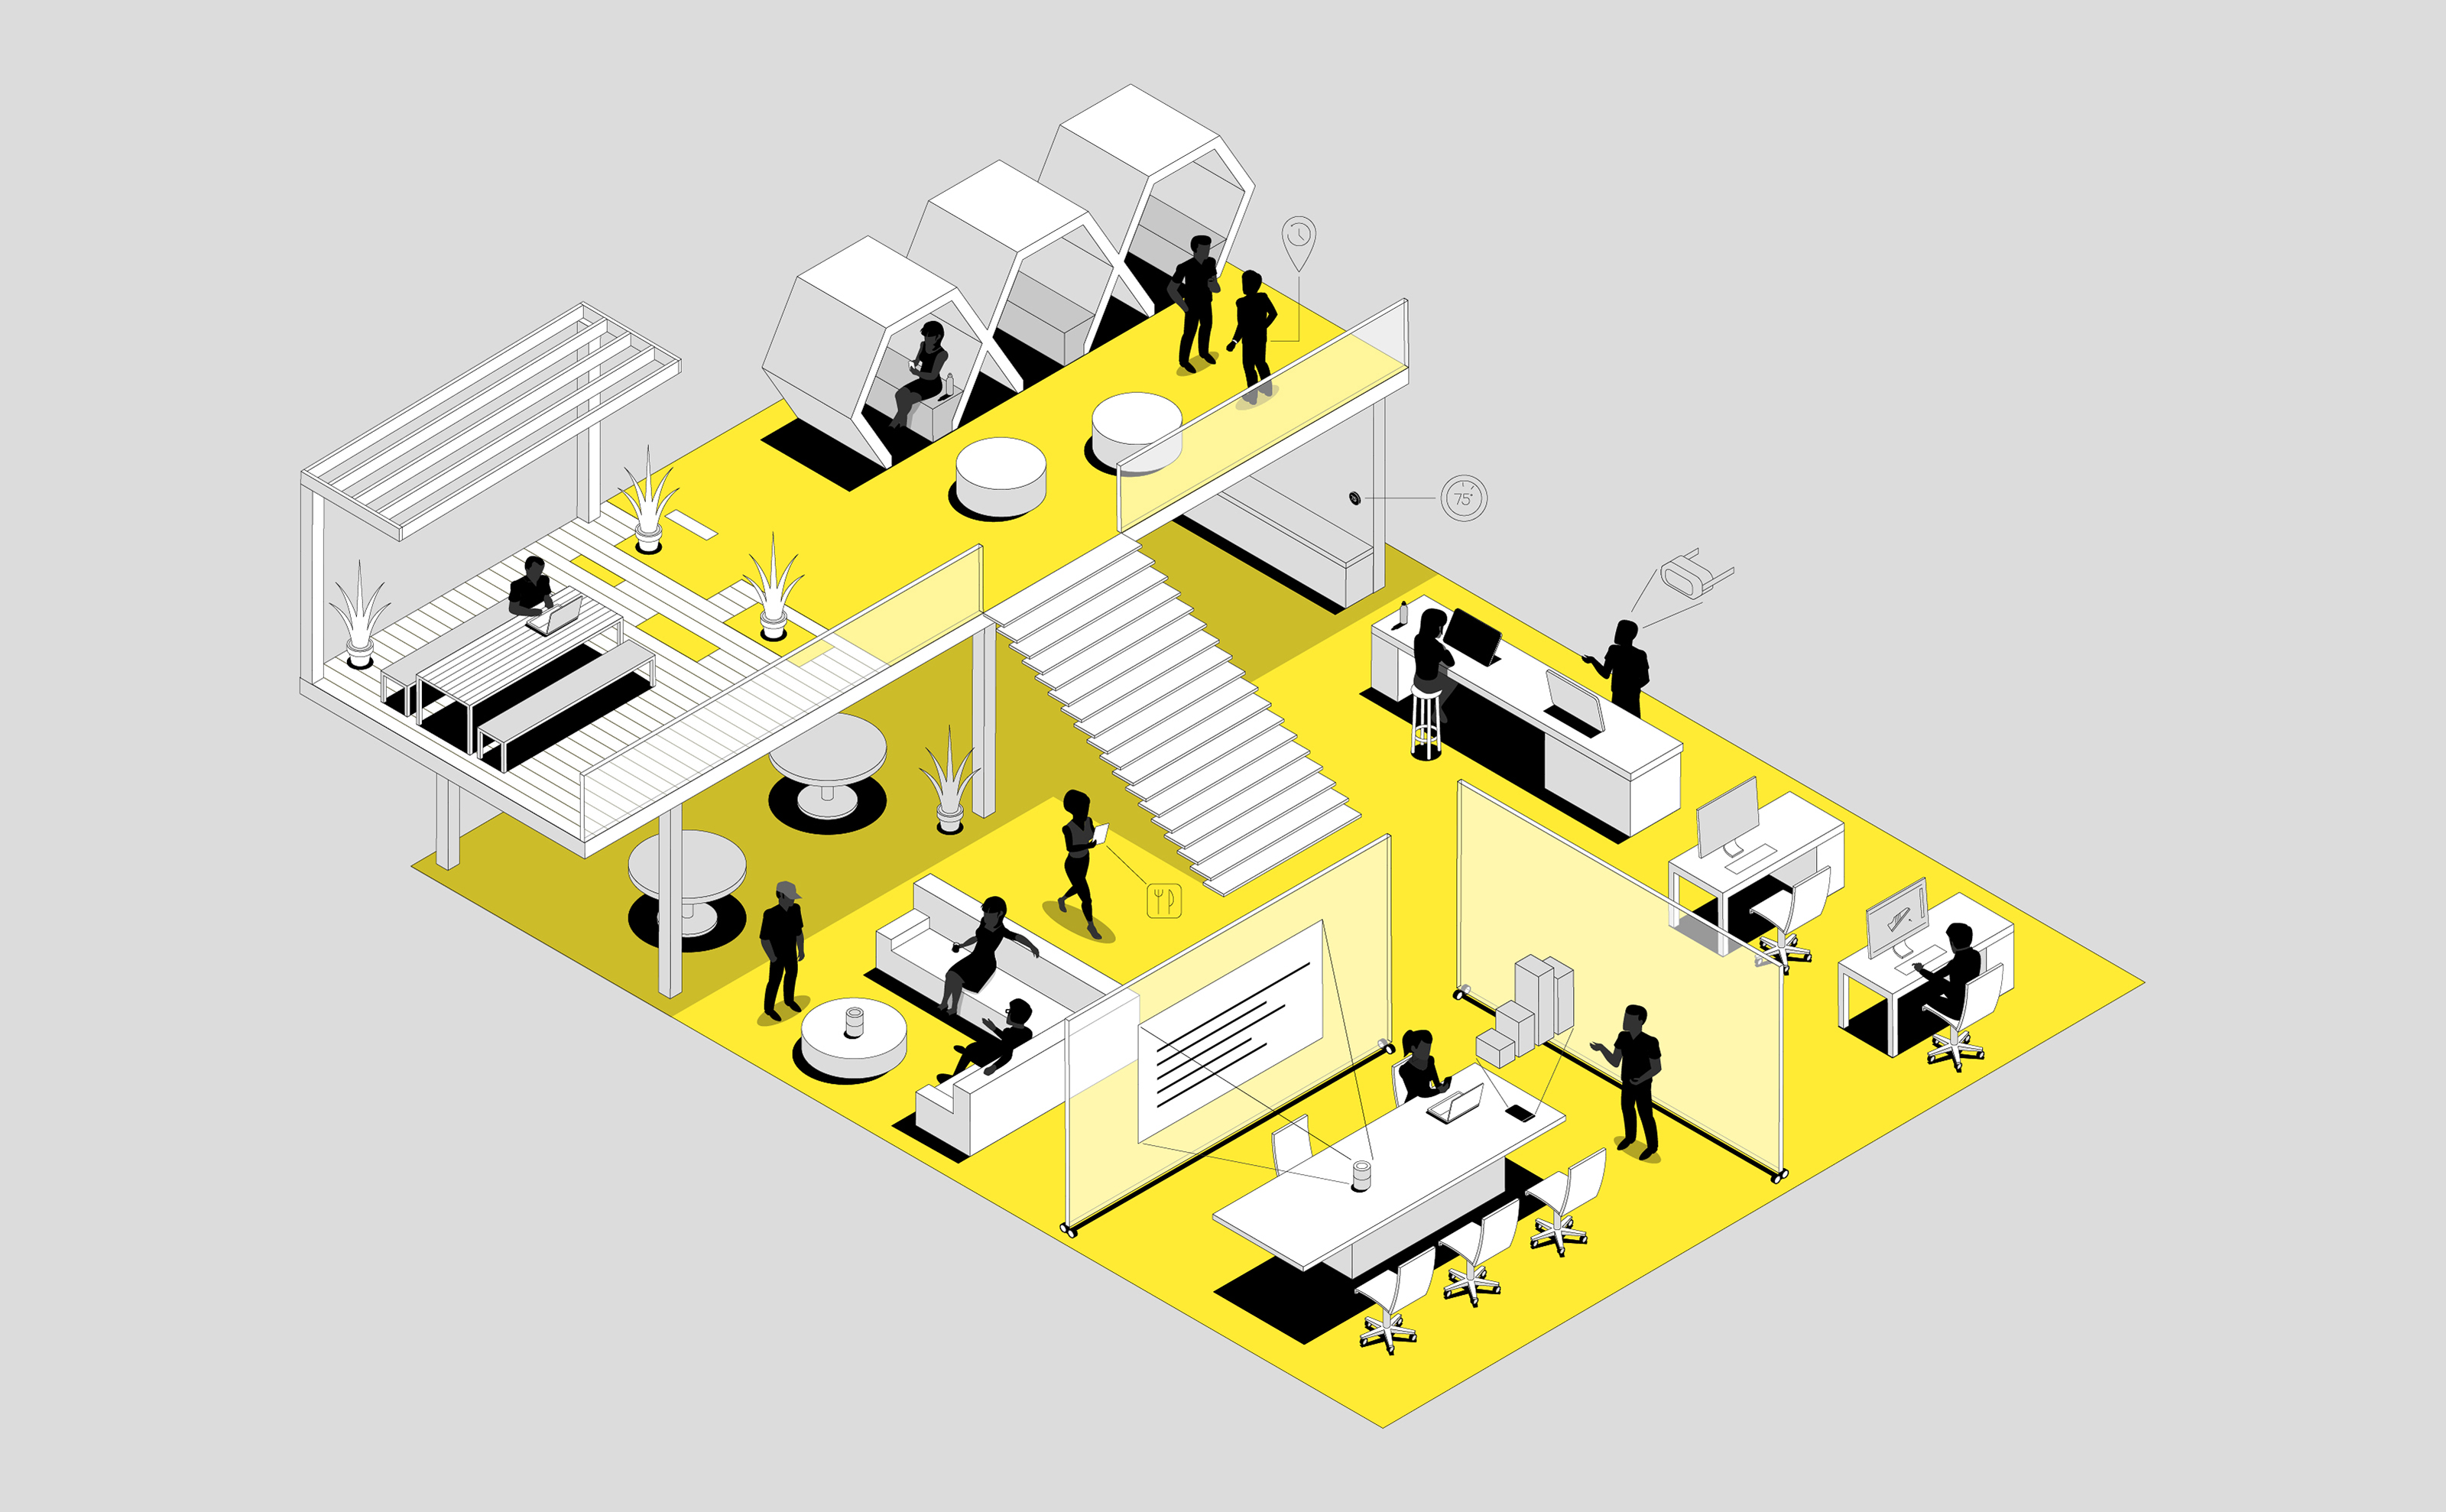 Yellow and Black Office of the future illustration design for Wired and DXC